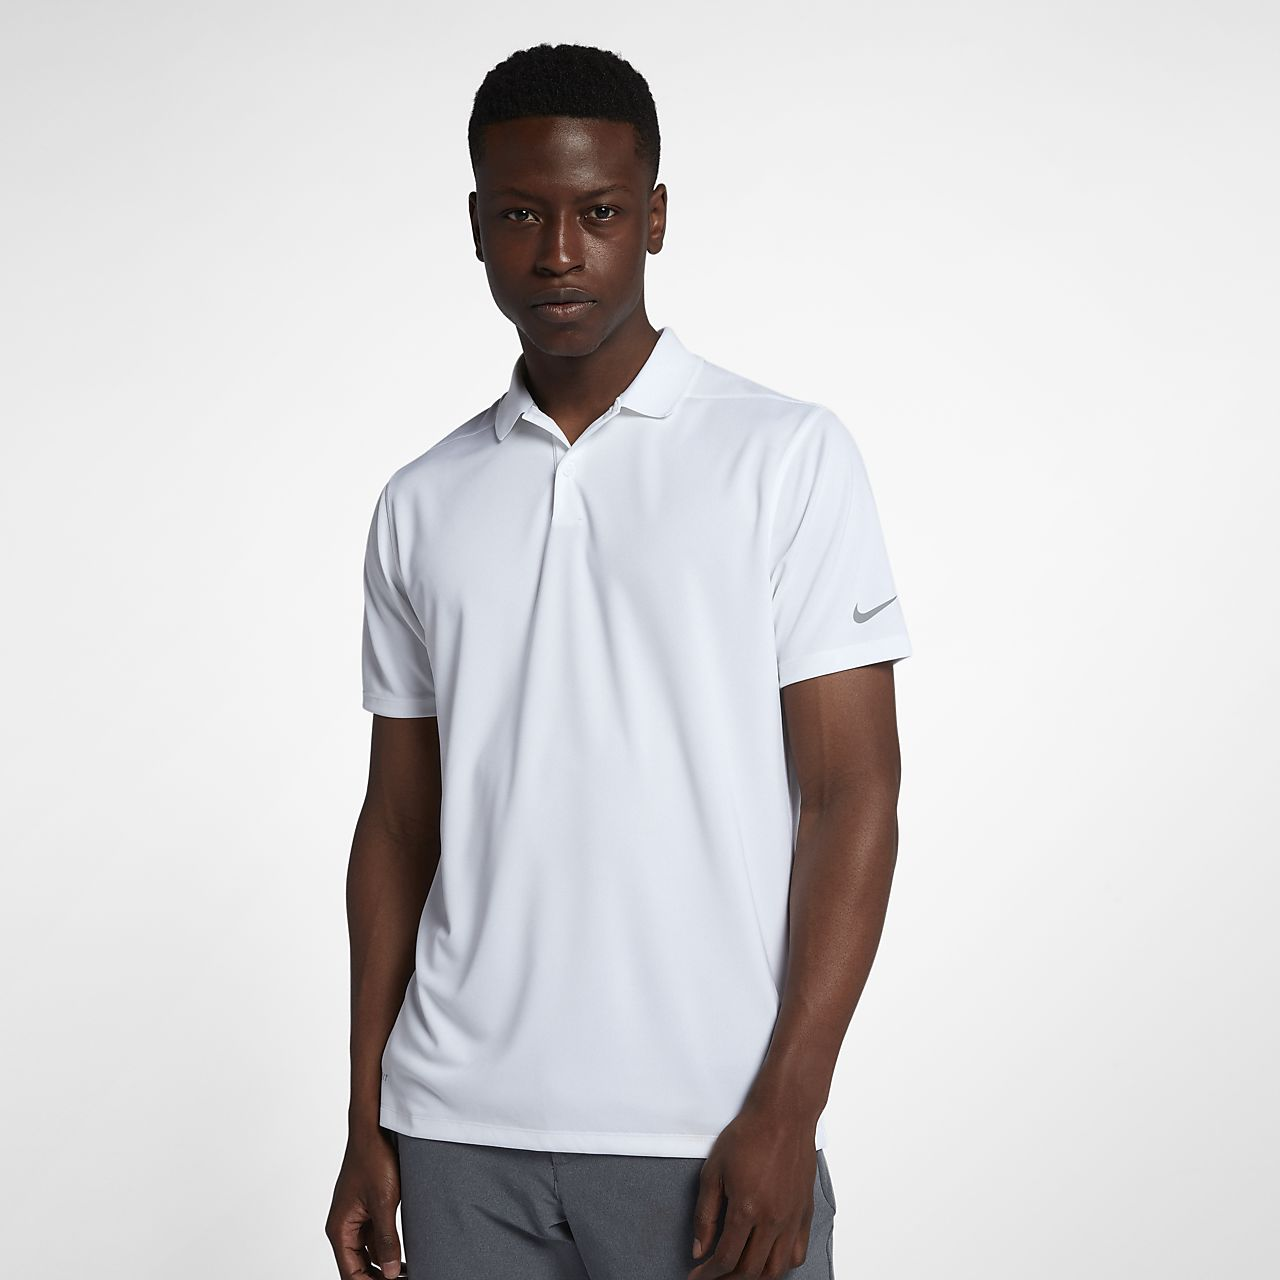 1a1bdca5d Nike Dri-FIT Victory Men's Golf Polo. Nike.com LU